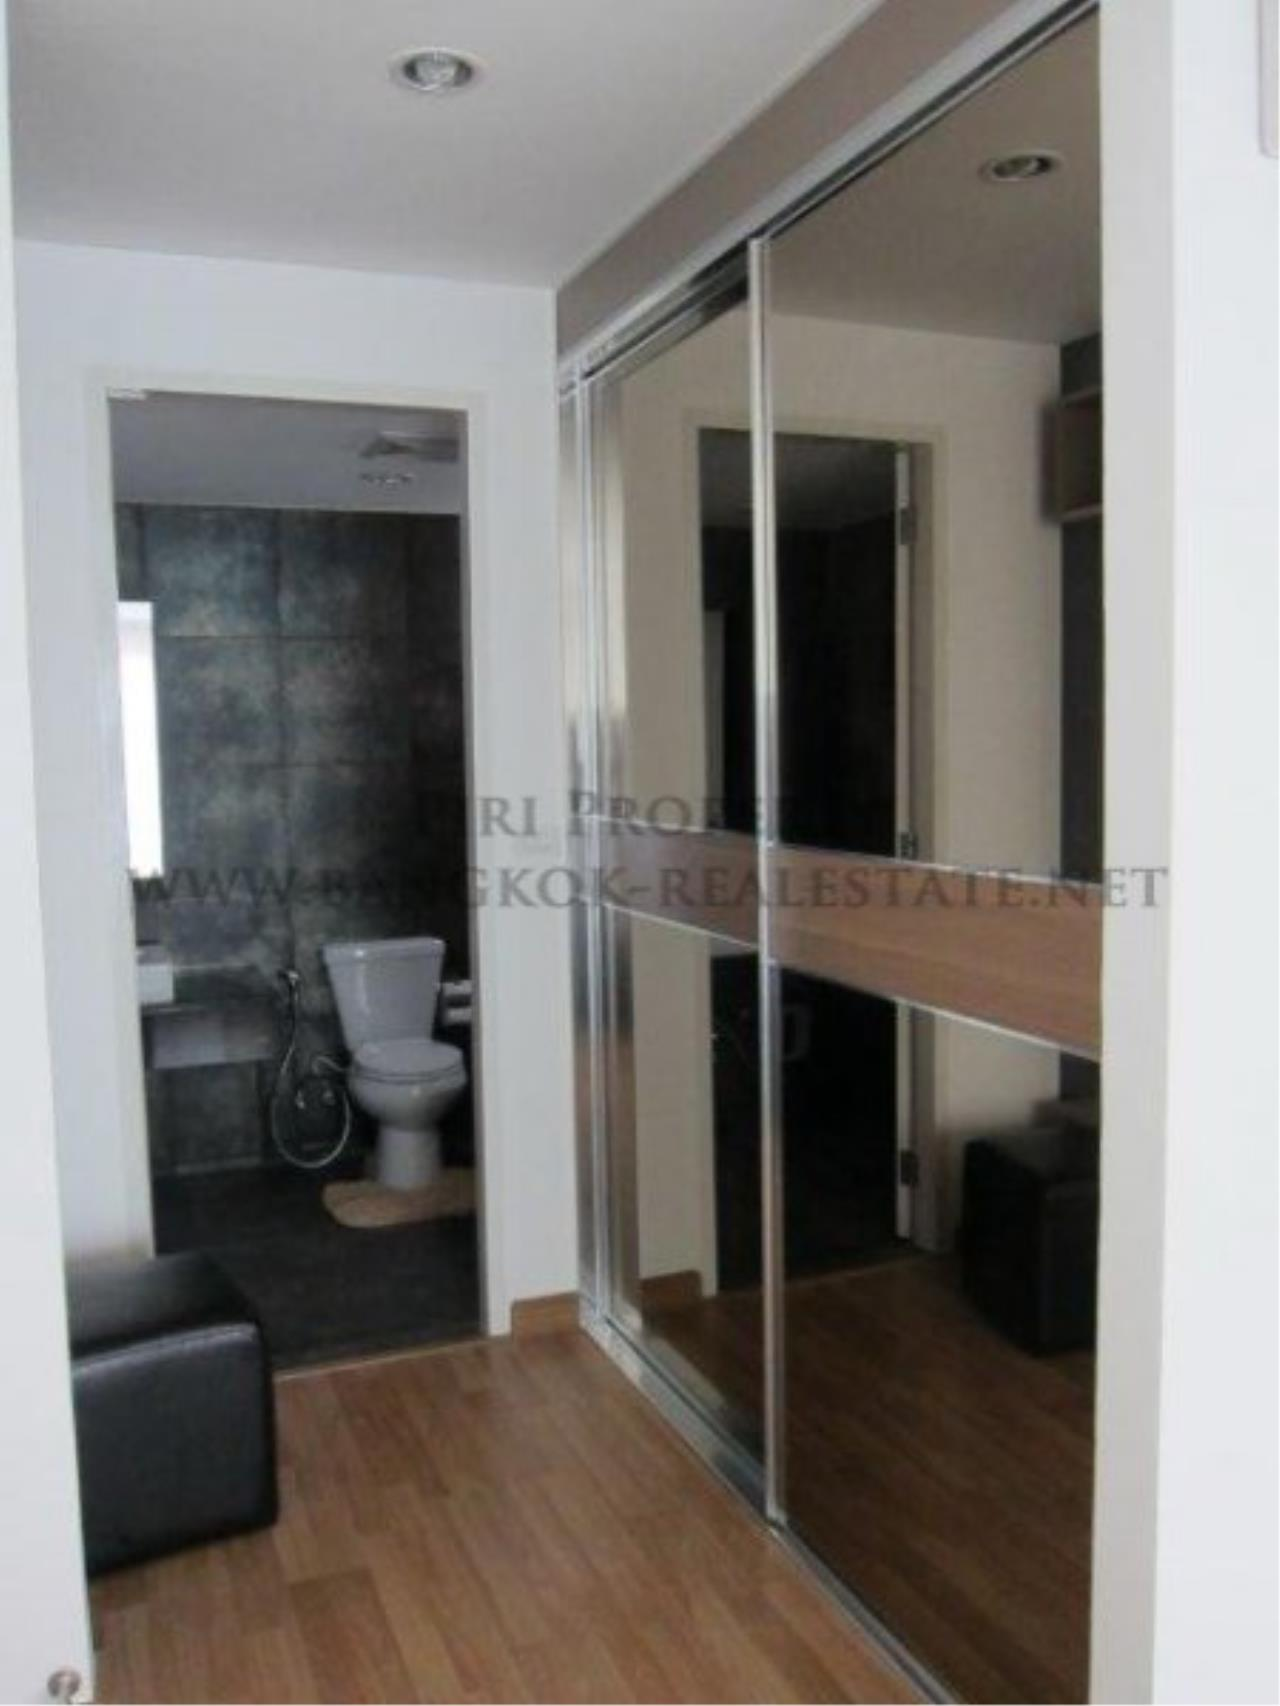 Piri Property Agency's 2 Bedroom Condo in Asoke - Voque 16 for Rent - Free Shuttle to BTS 4